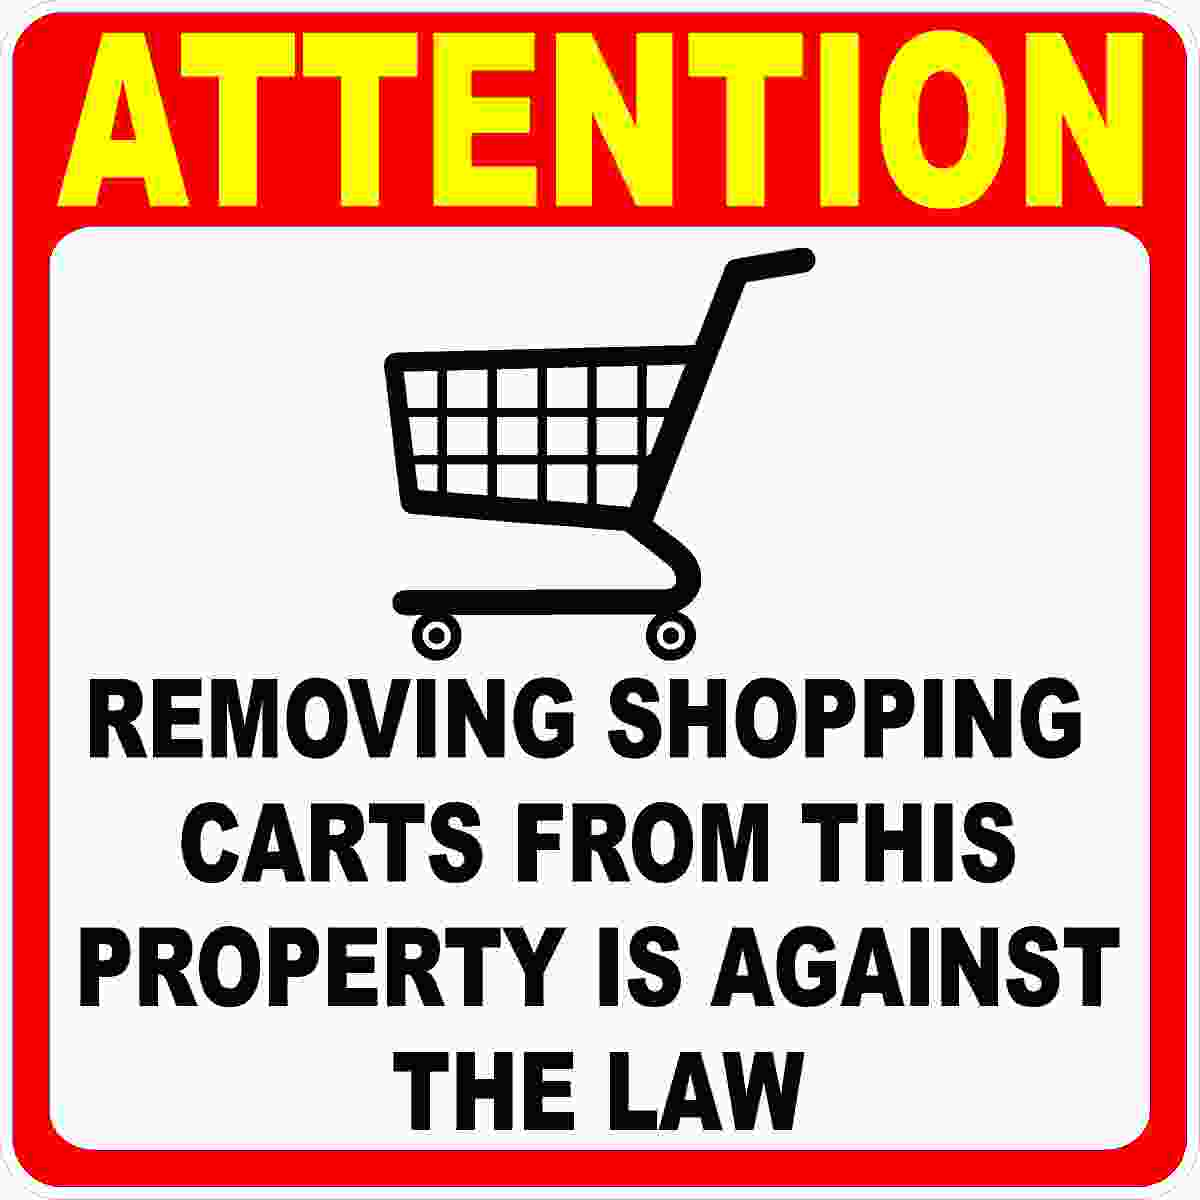 Attention Removing Shopping Carts From Property Against